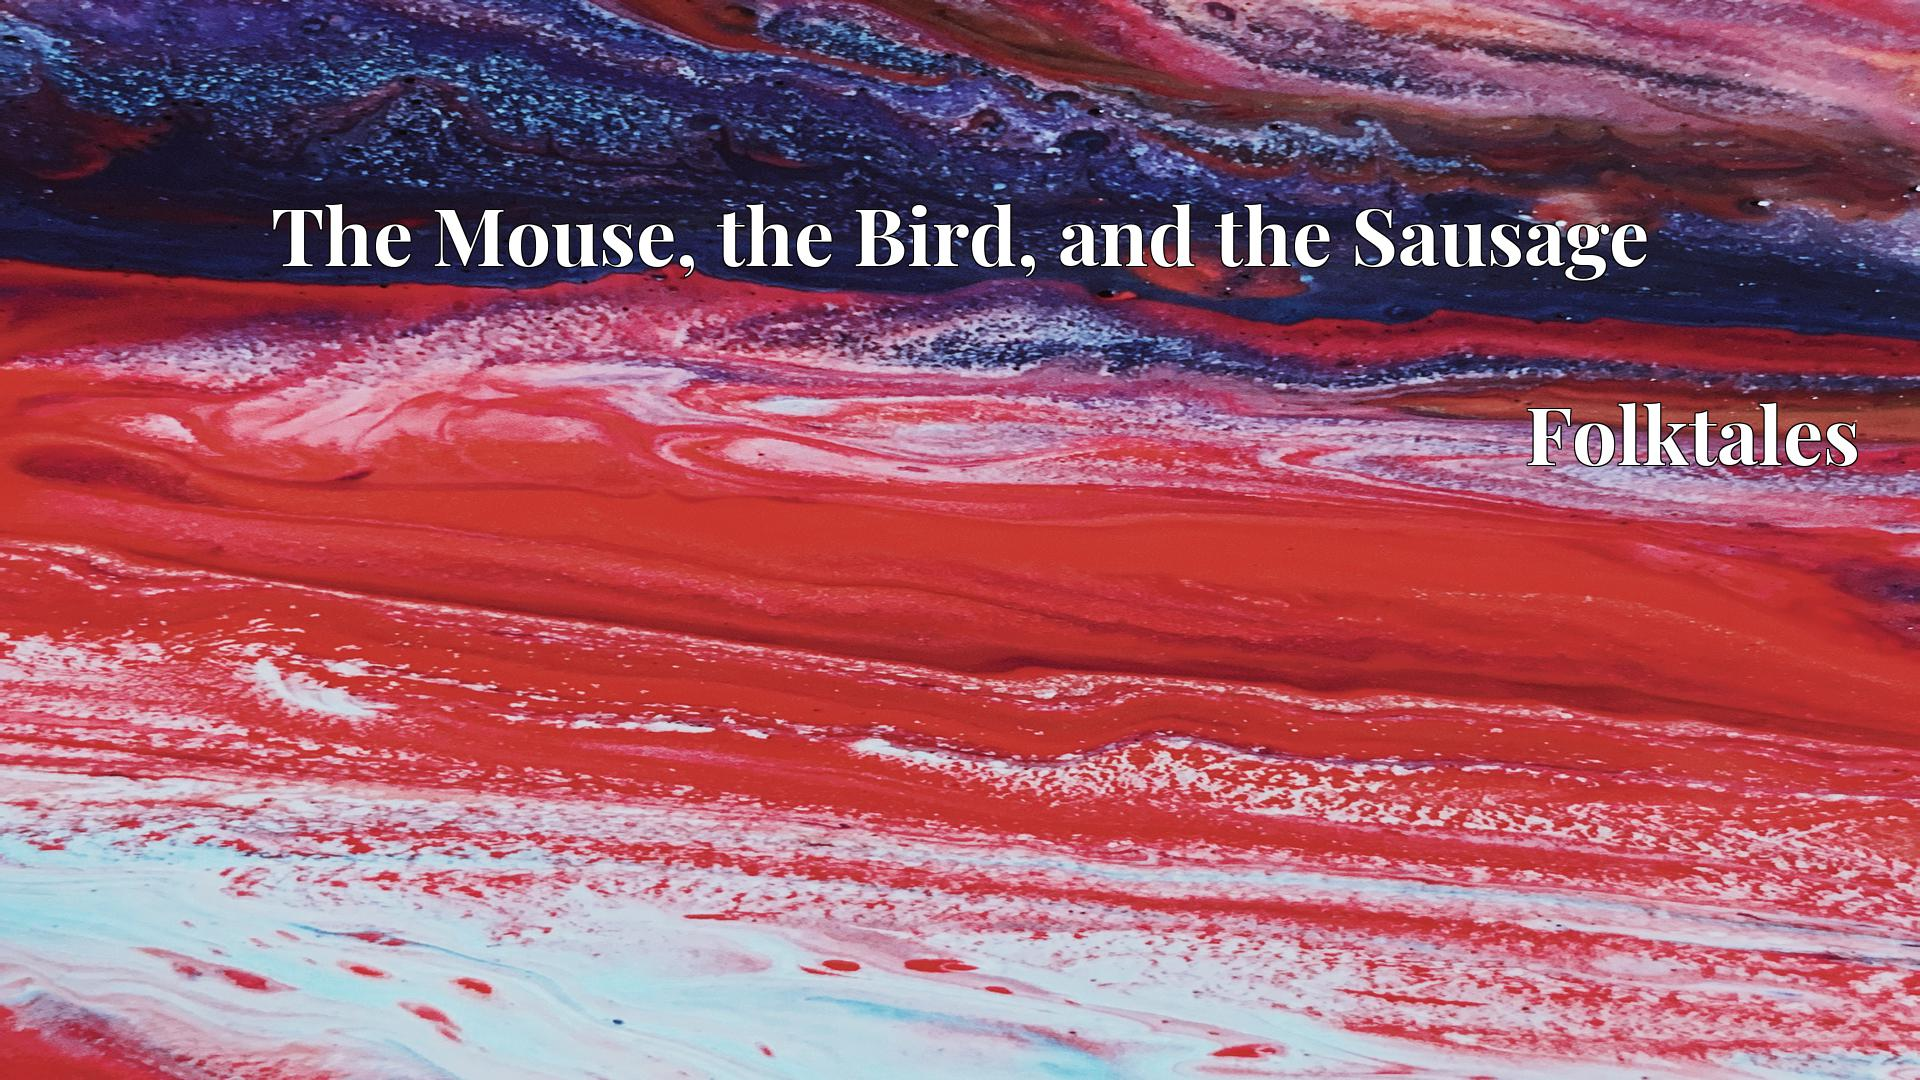 The Mouse, the Bird, and the Sausage - Folktales